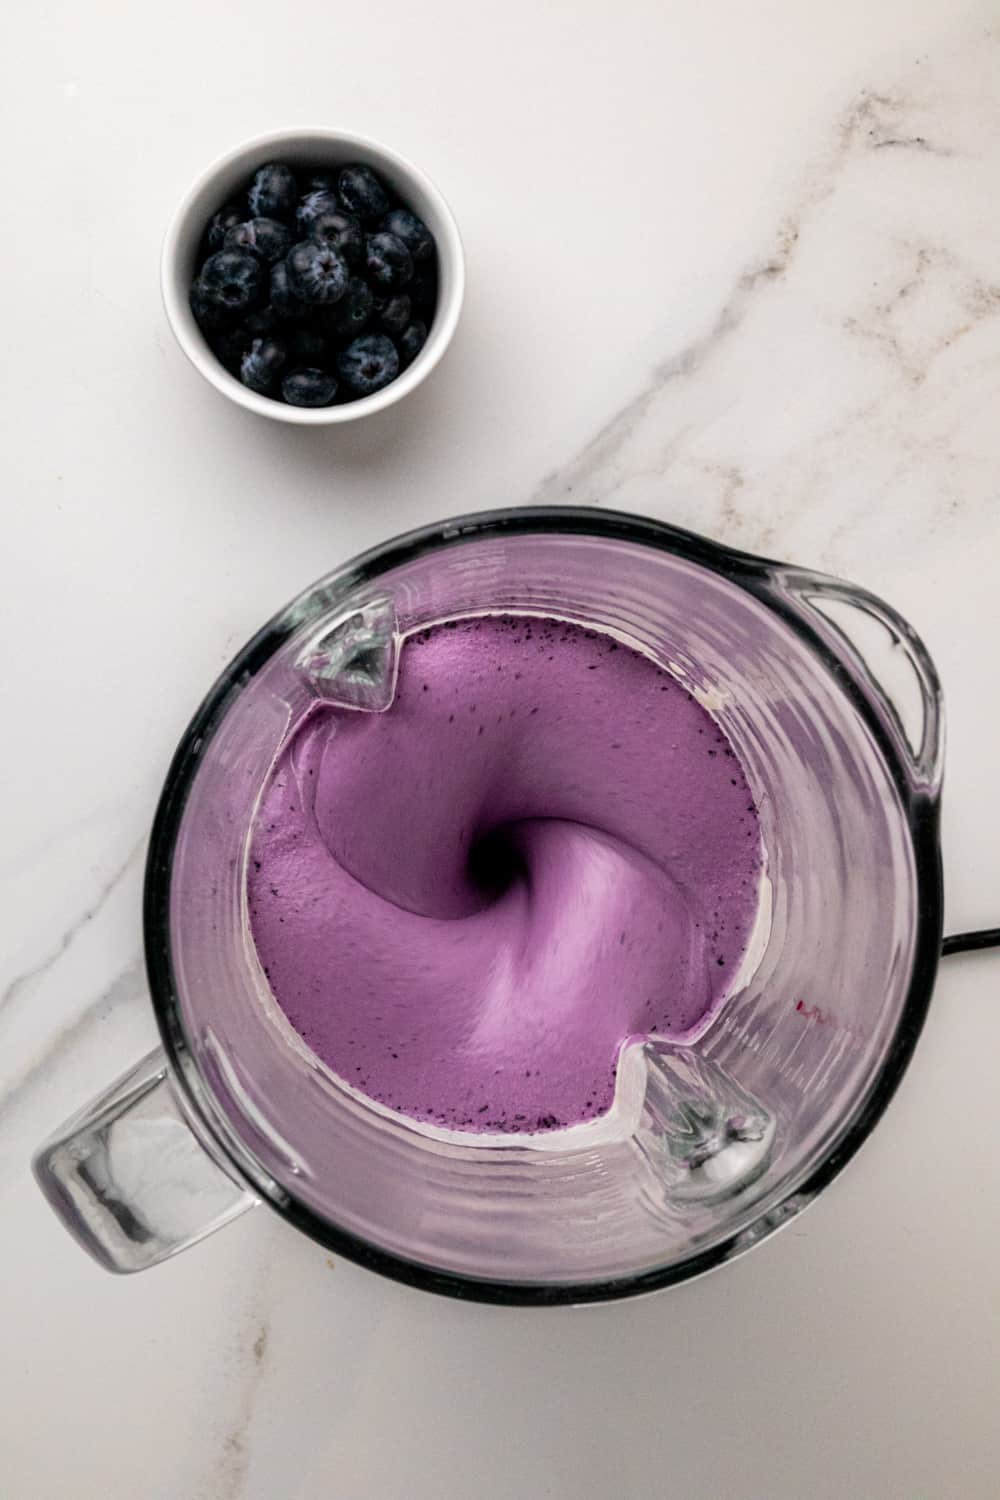 Blending the blueberries until the mixture goes purple